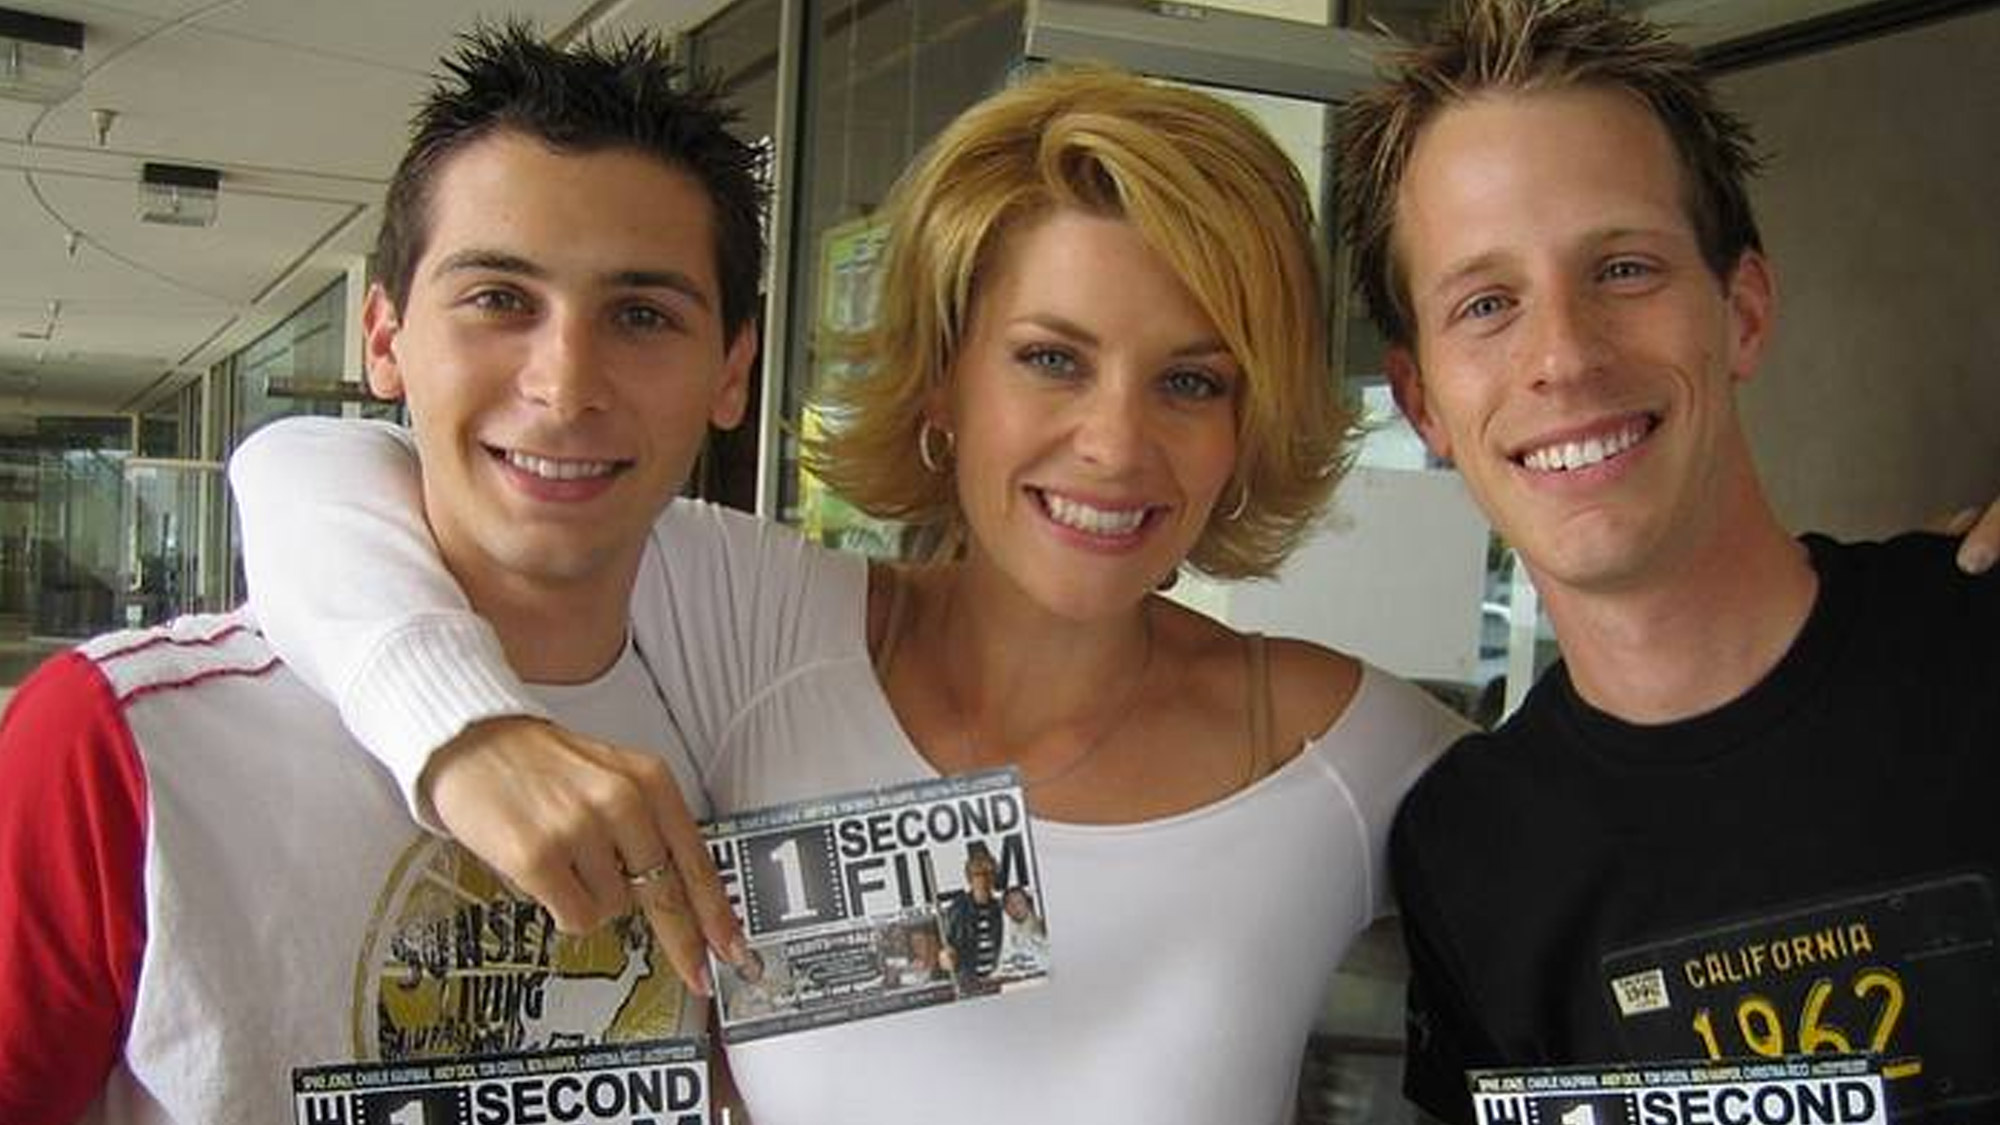 Justin Berfield (Reese), McKenzie Westmore et Jason Felts soutiennent le projet The 1 Second Film, le 26 avril 2005.